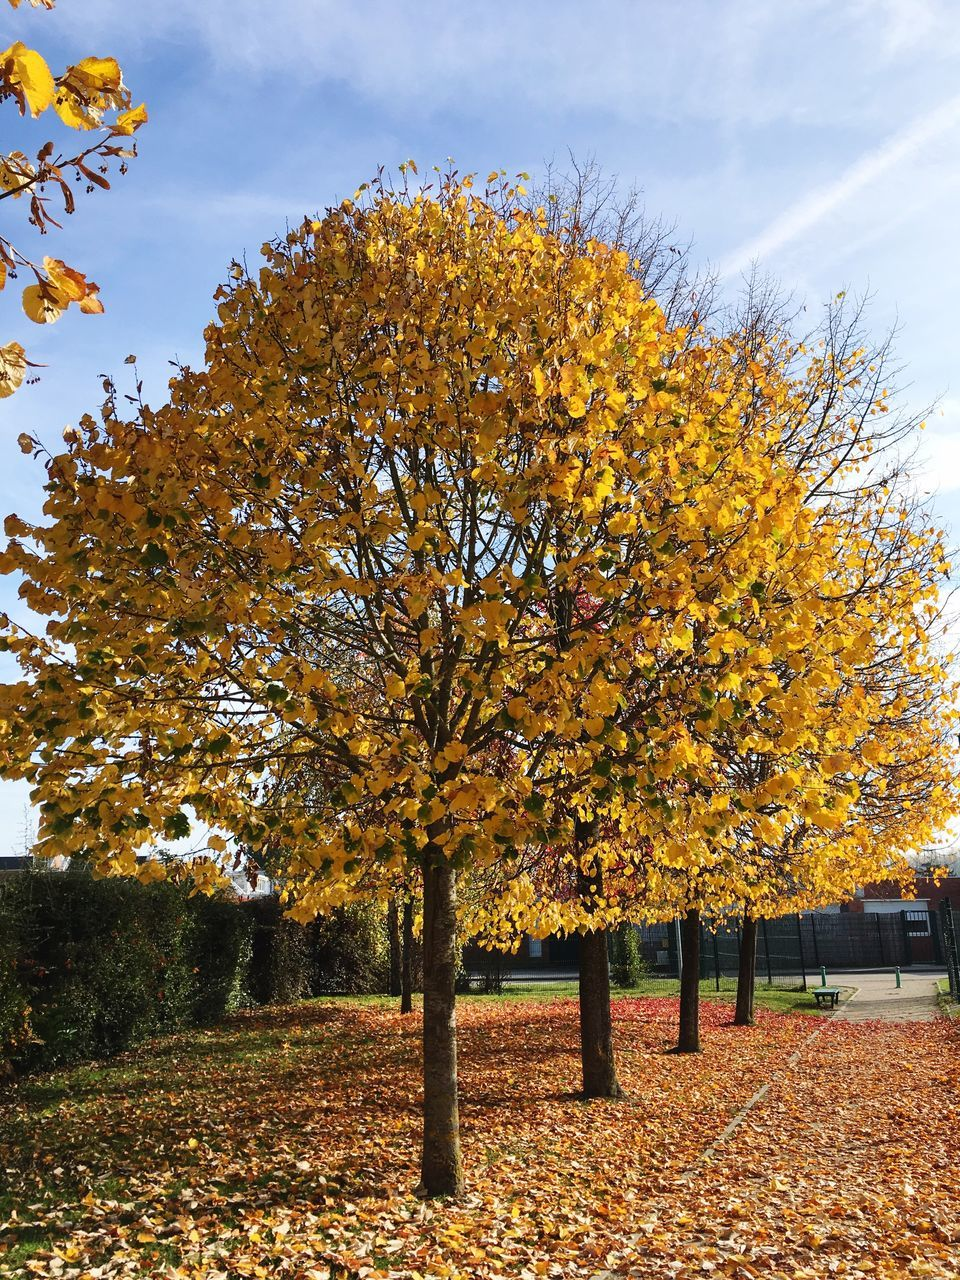 autumn, change, tree, leaf, nature, beauty in nature, outdoors, orange color, no people, yellow, tranquility, day, growth, sky, park - man made space, scenics, maple, branch, fragility, close-up